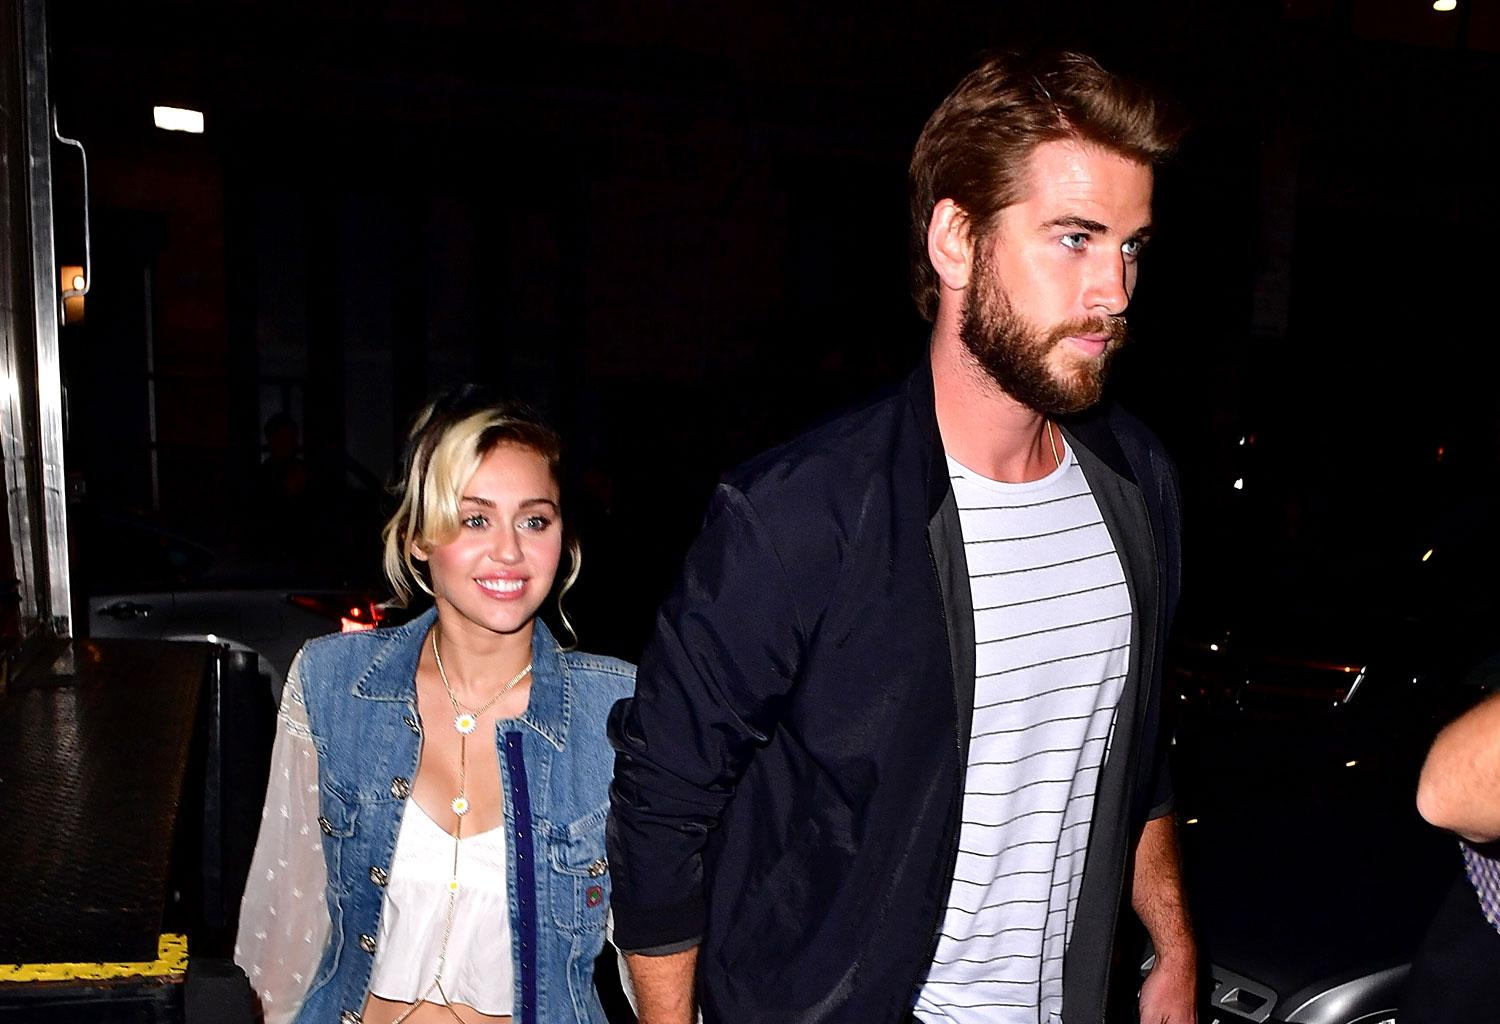 Miley Cyrus Crazy Fan Grabs And Forcibly Kisses Her Before Husband Liam Hemsworth Protects Her - Check Out The Scary Footage!